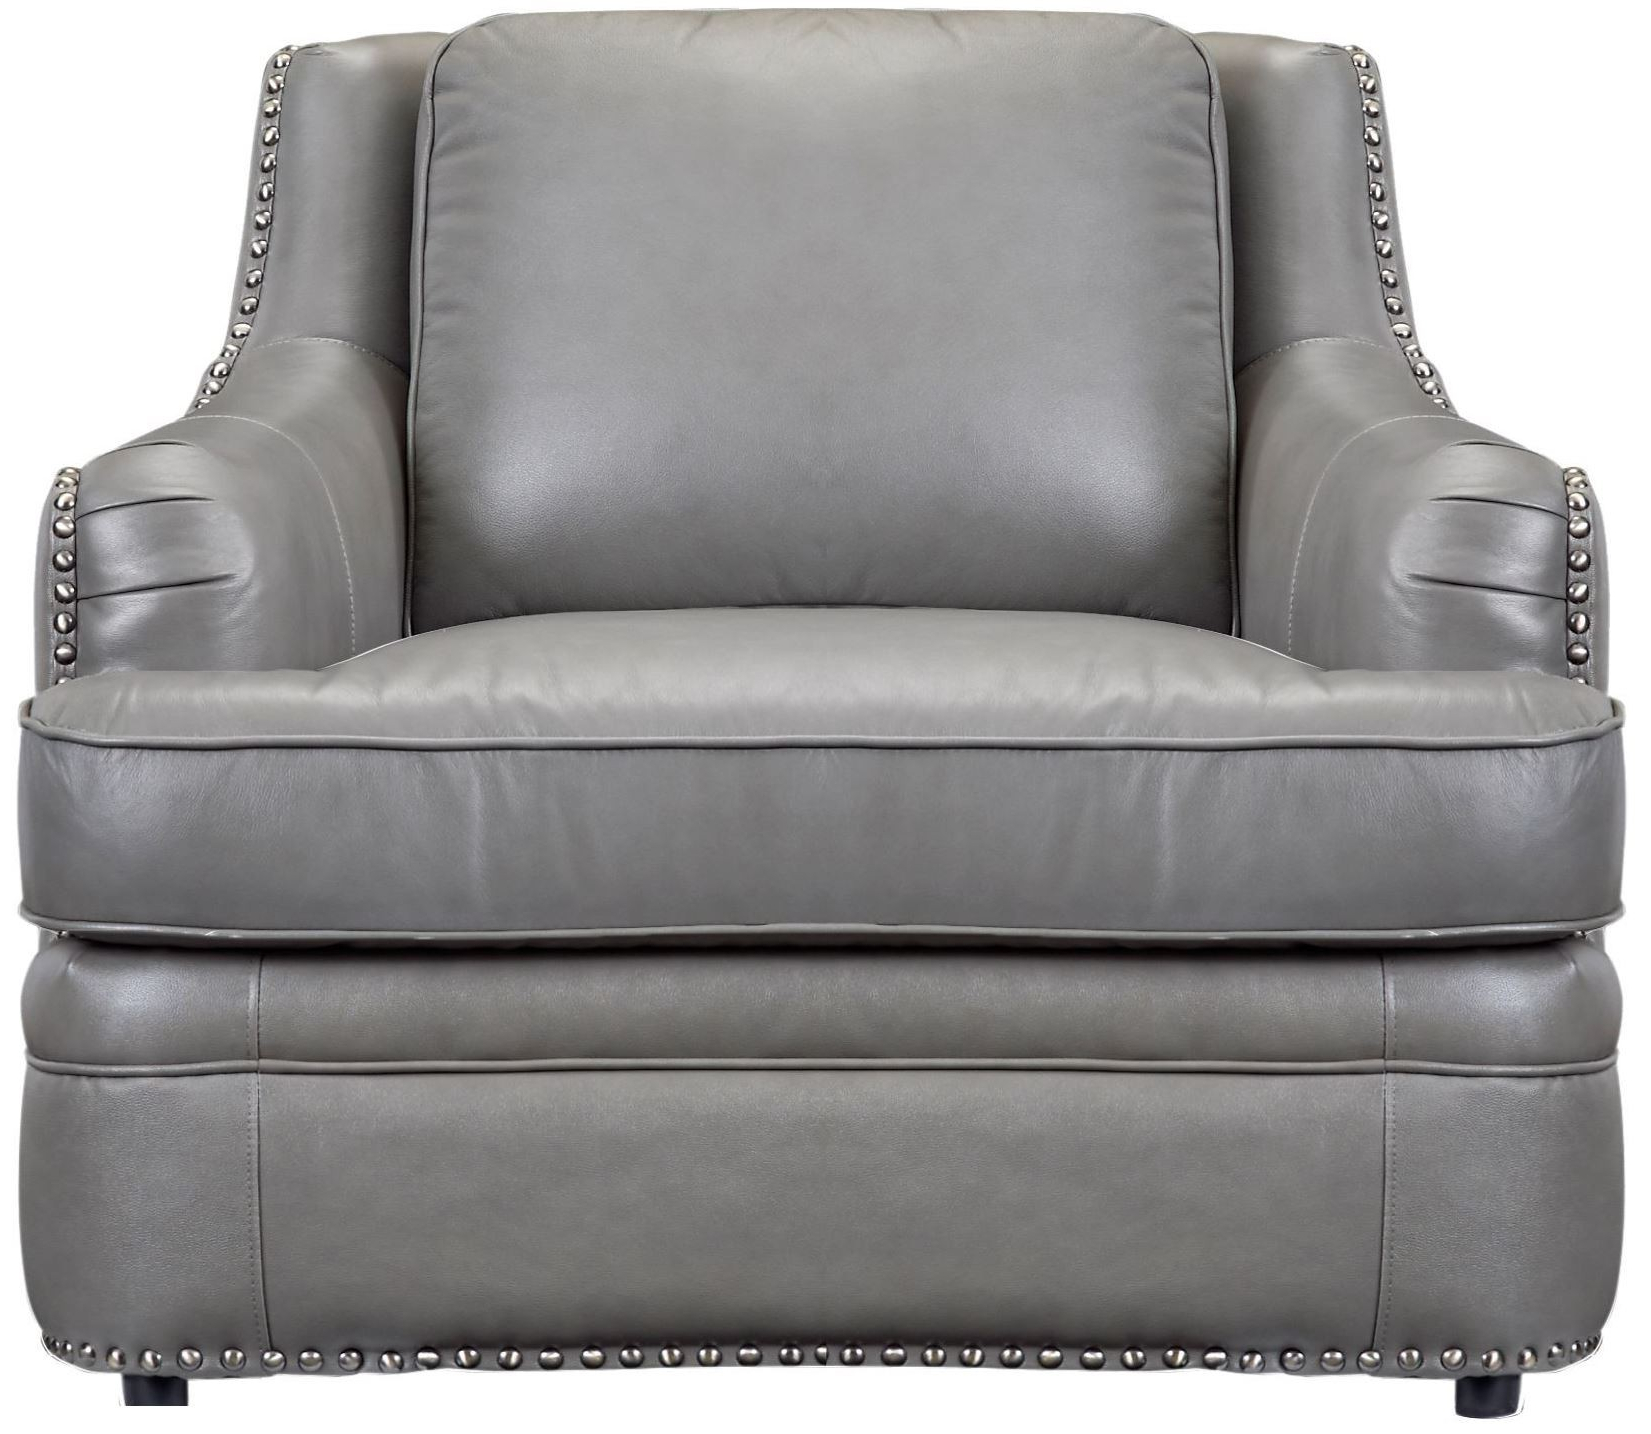 Recent Dark Grey Swivel Chairs Intended For Tulsa Dark Gray Swivel Chair – Brown's Furniture Showplace (View 11 of 20)